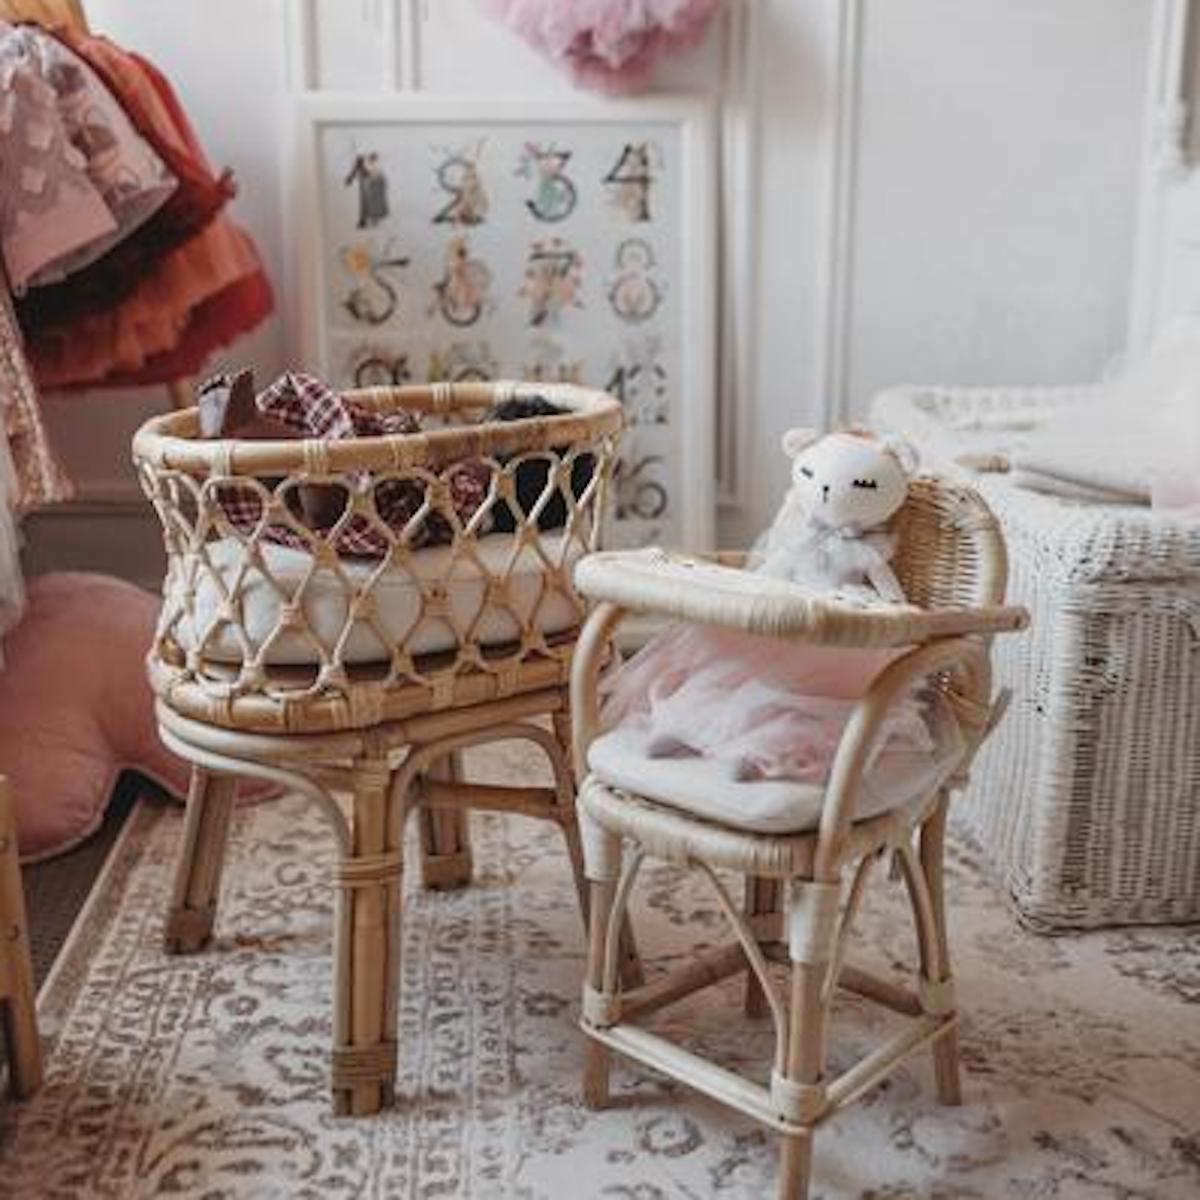 A child's bedroom with a Tiny Harlow doll's crib and high chair.